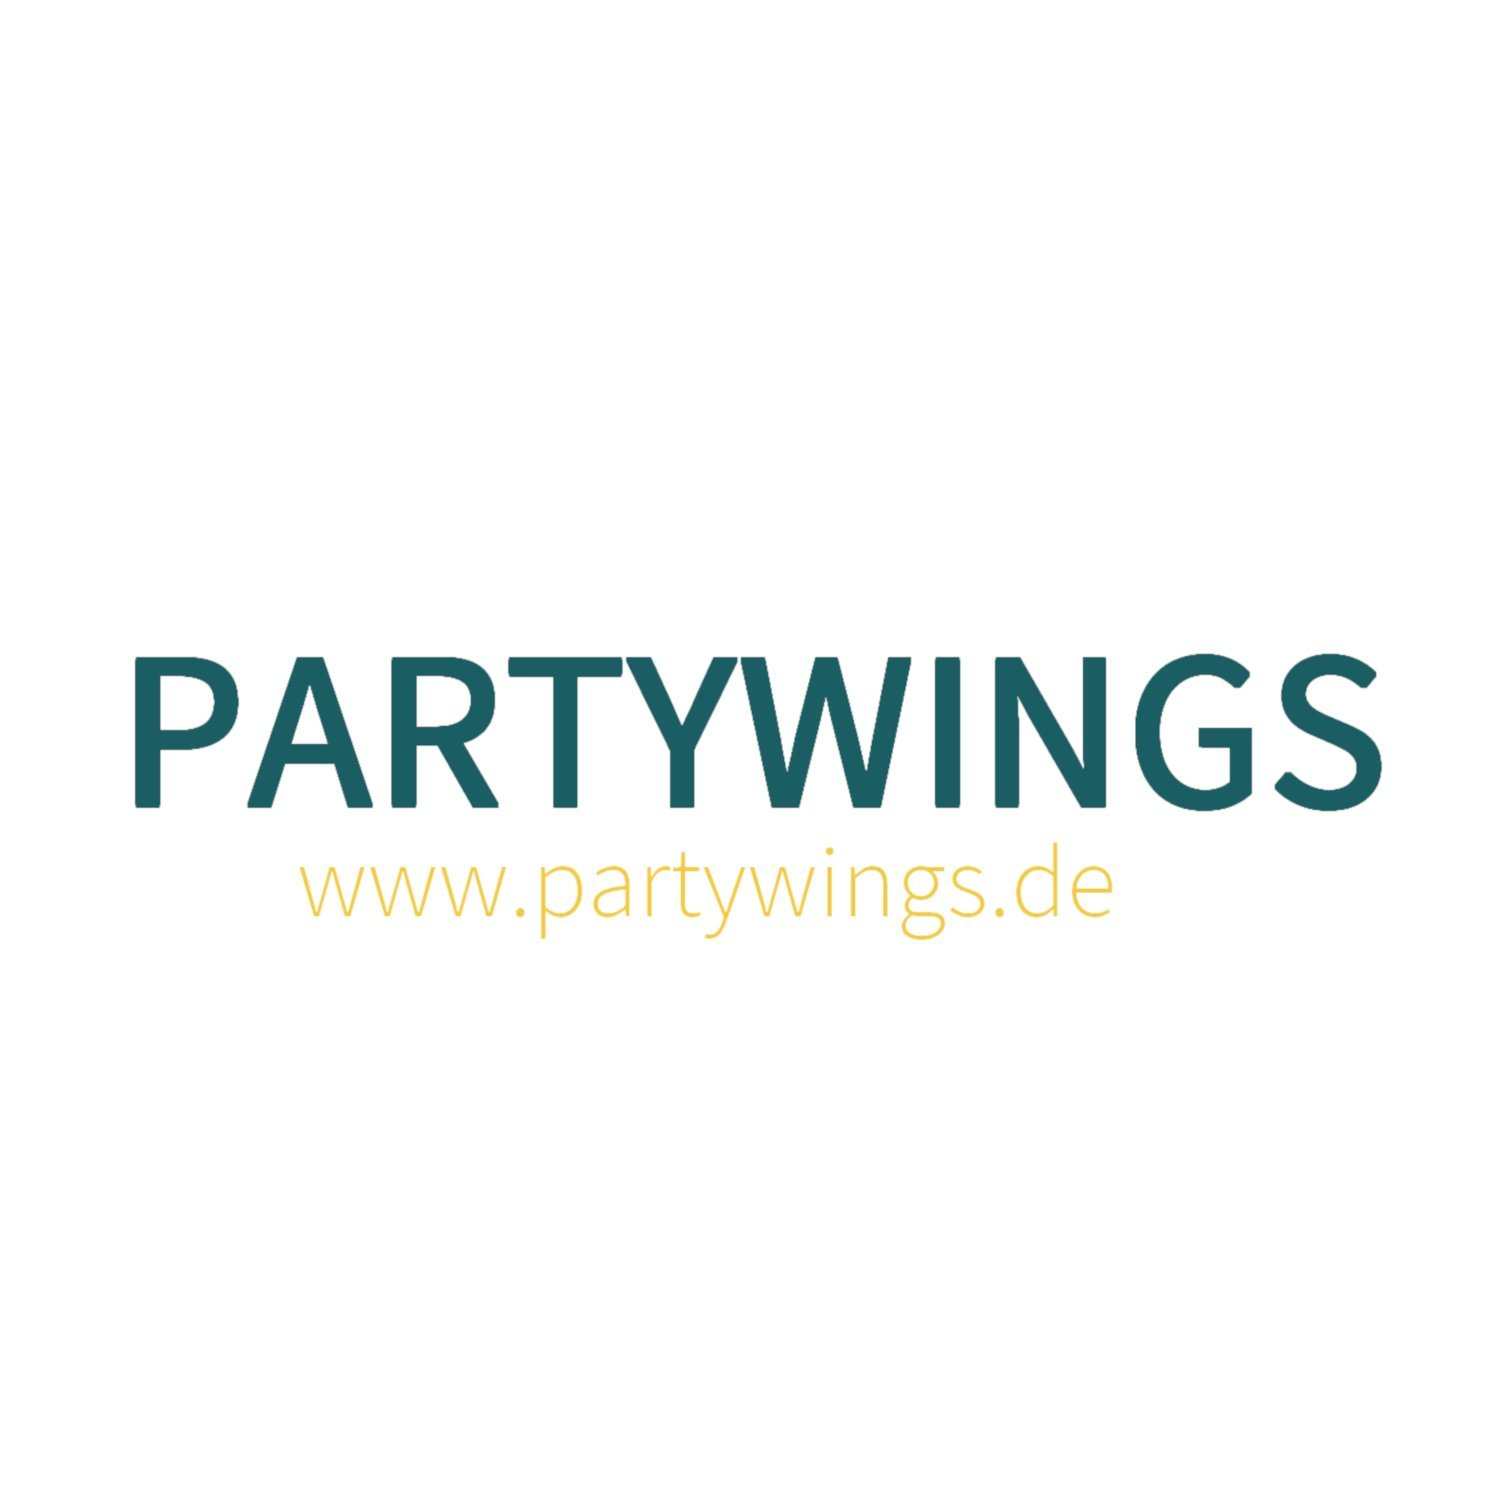 PARTYWINGS